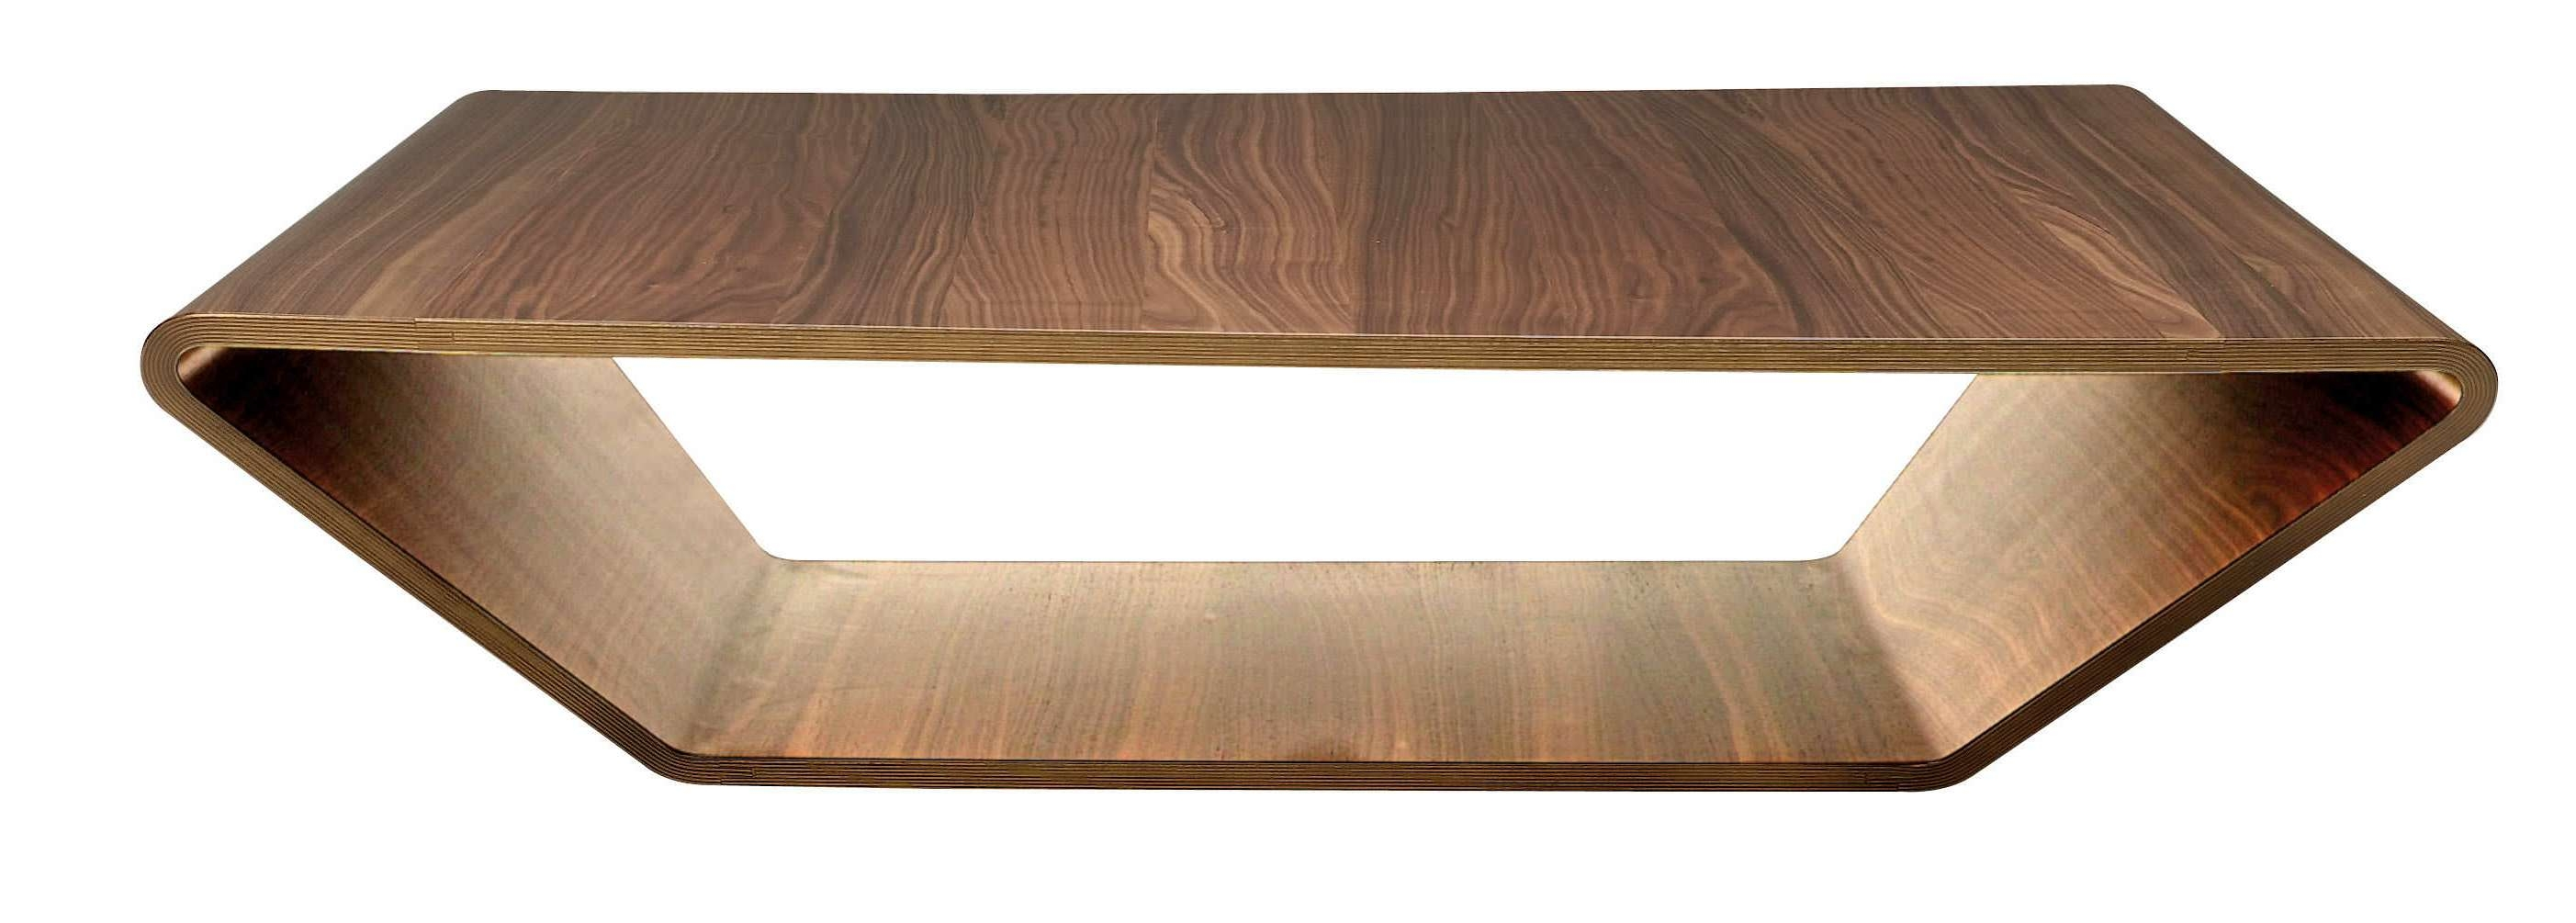 Contemporary Coffee Table / Oak / Walnut / Birch – Brasilia Throughout Favorite Contemporary Oak Coffee Table (View 6 of 20)